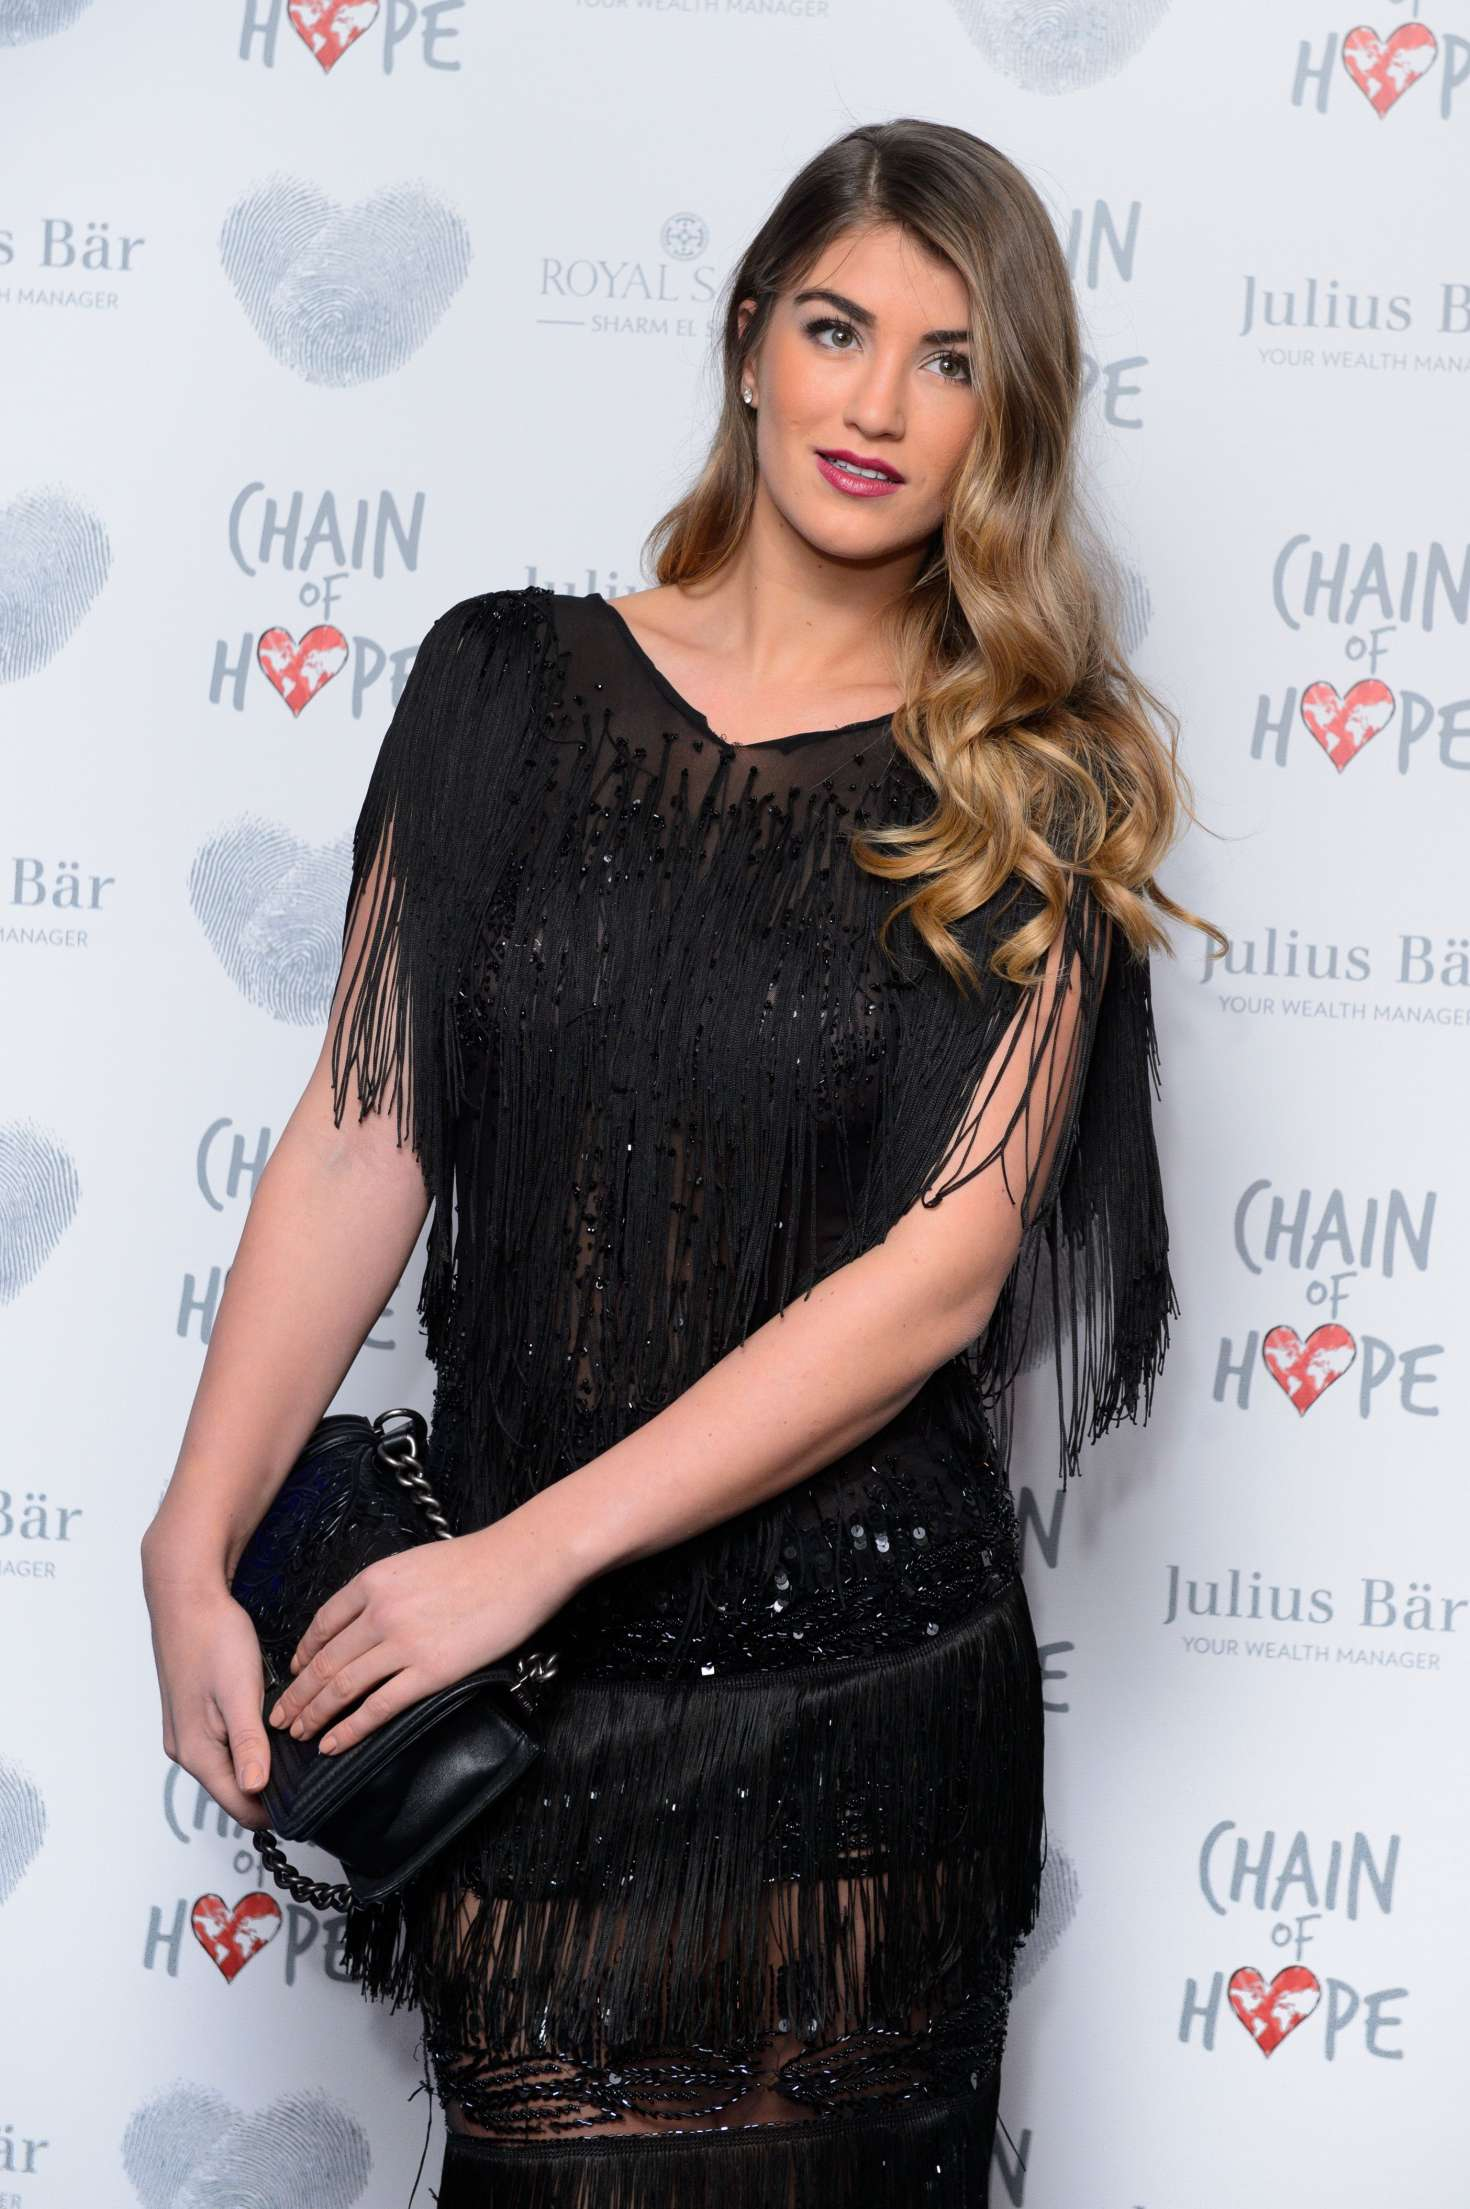 Amy Willerton 2016 : Amy Willerton: Chain Of Hope Annual Gala Ball 2016 -03